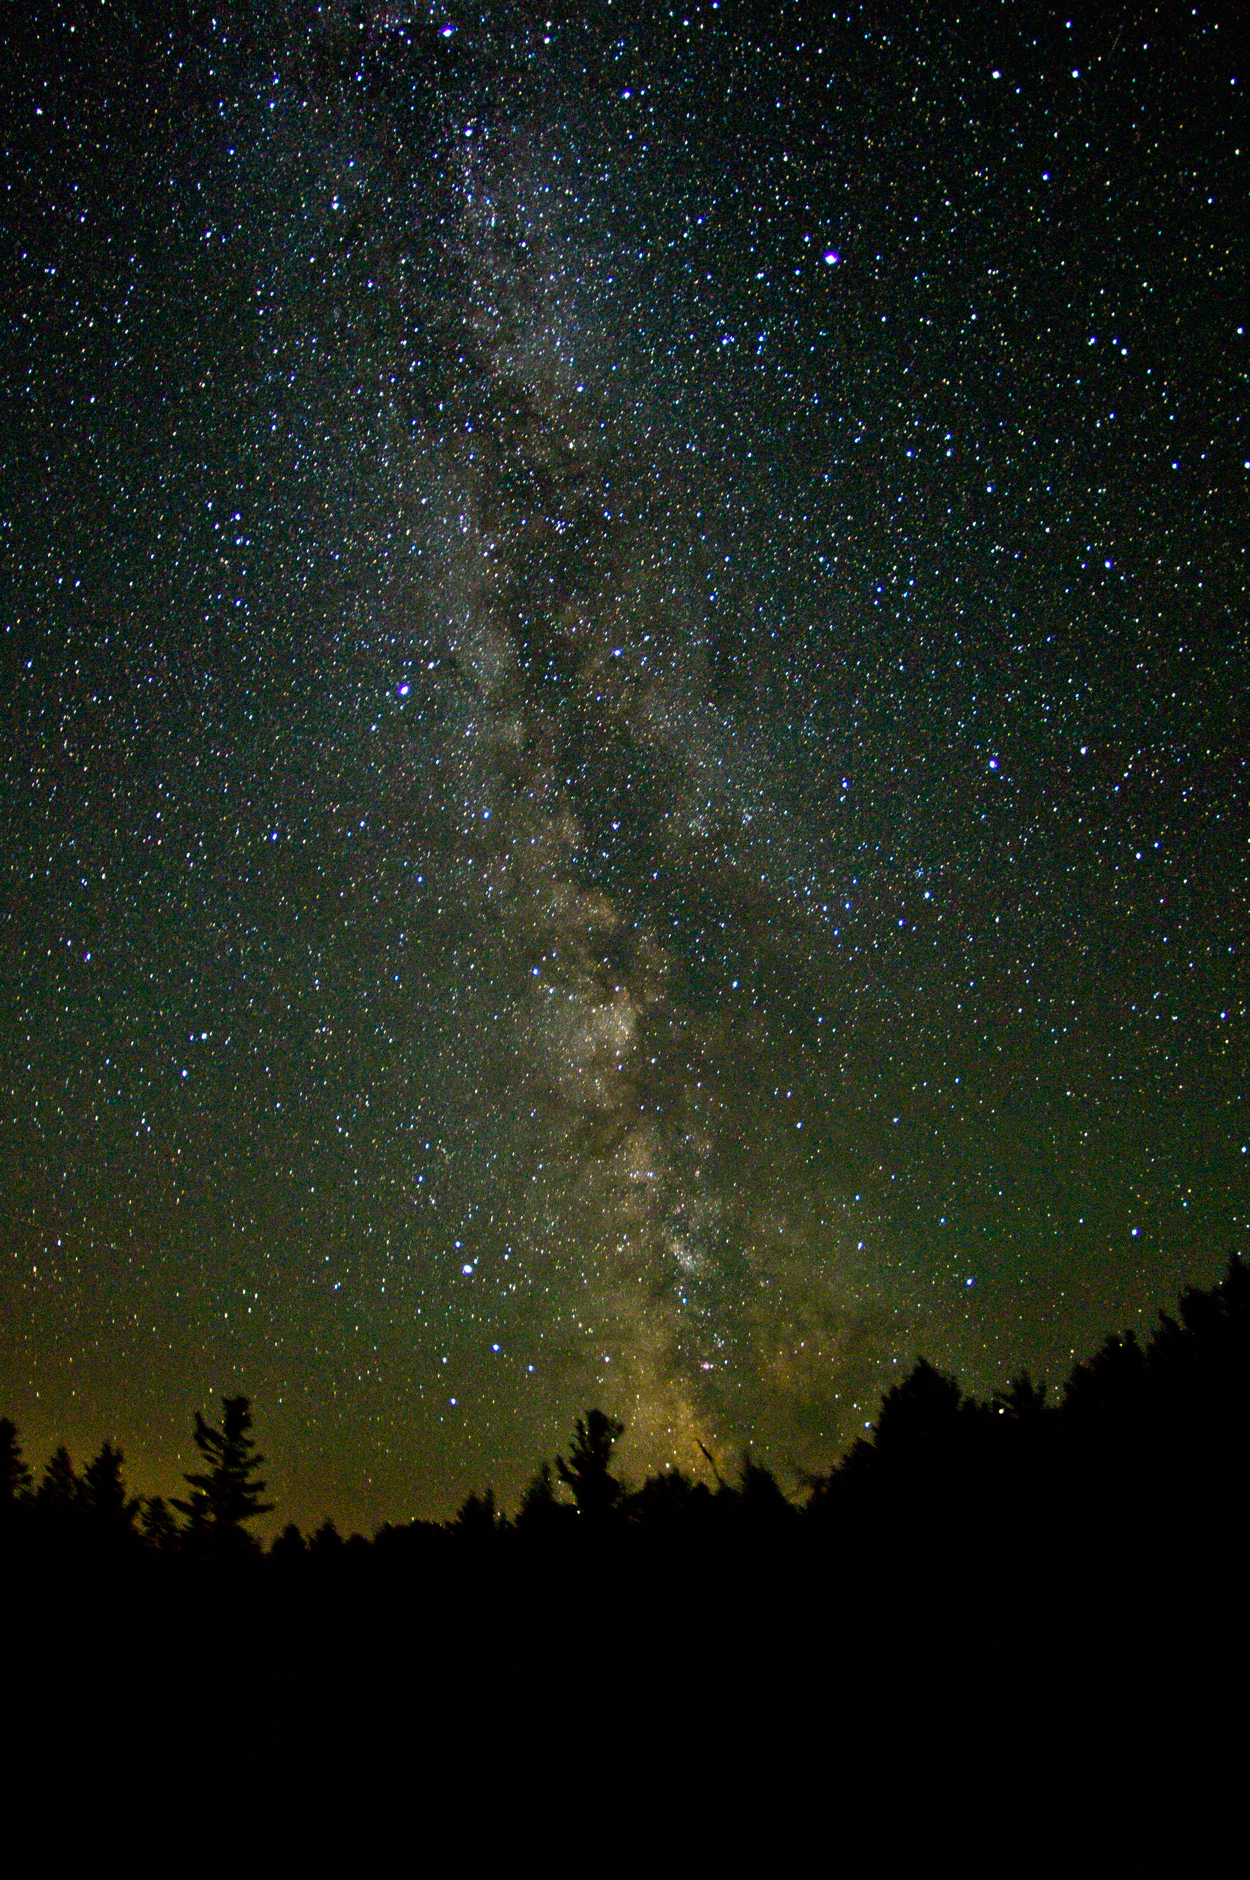 Milkyway at Stump Pond